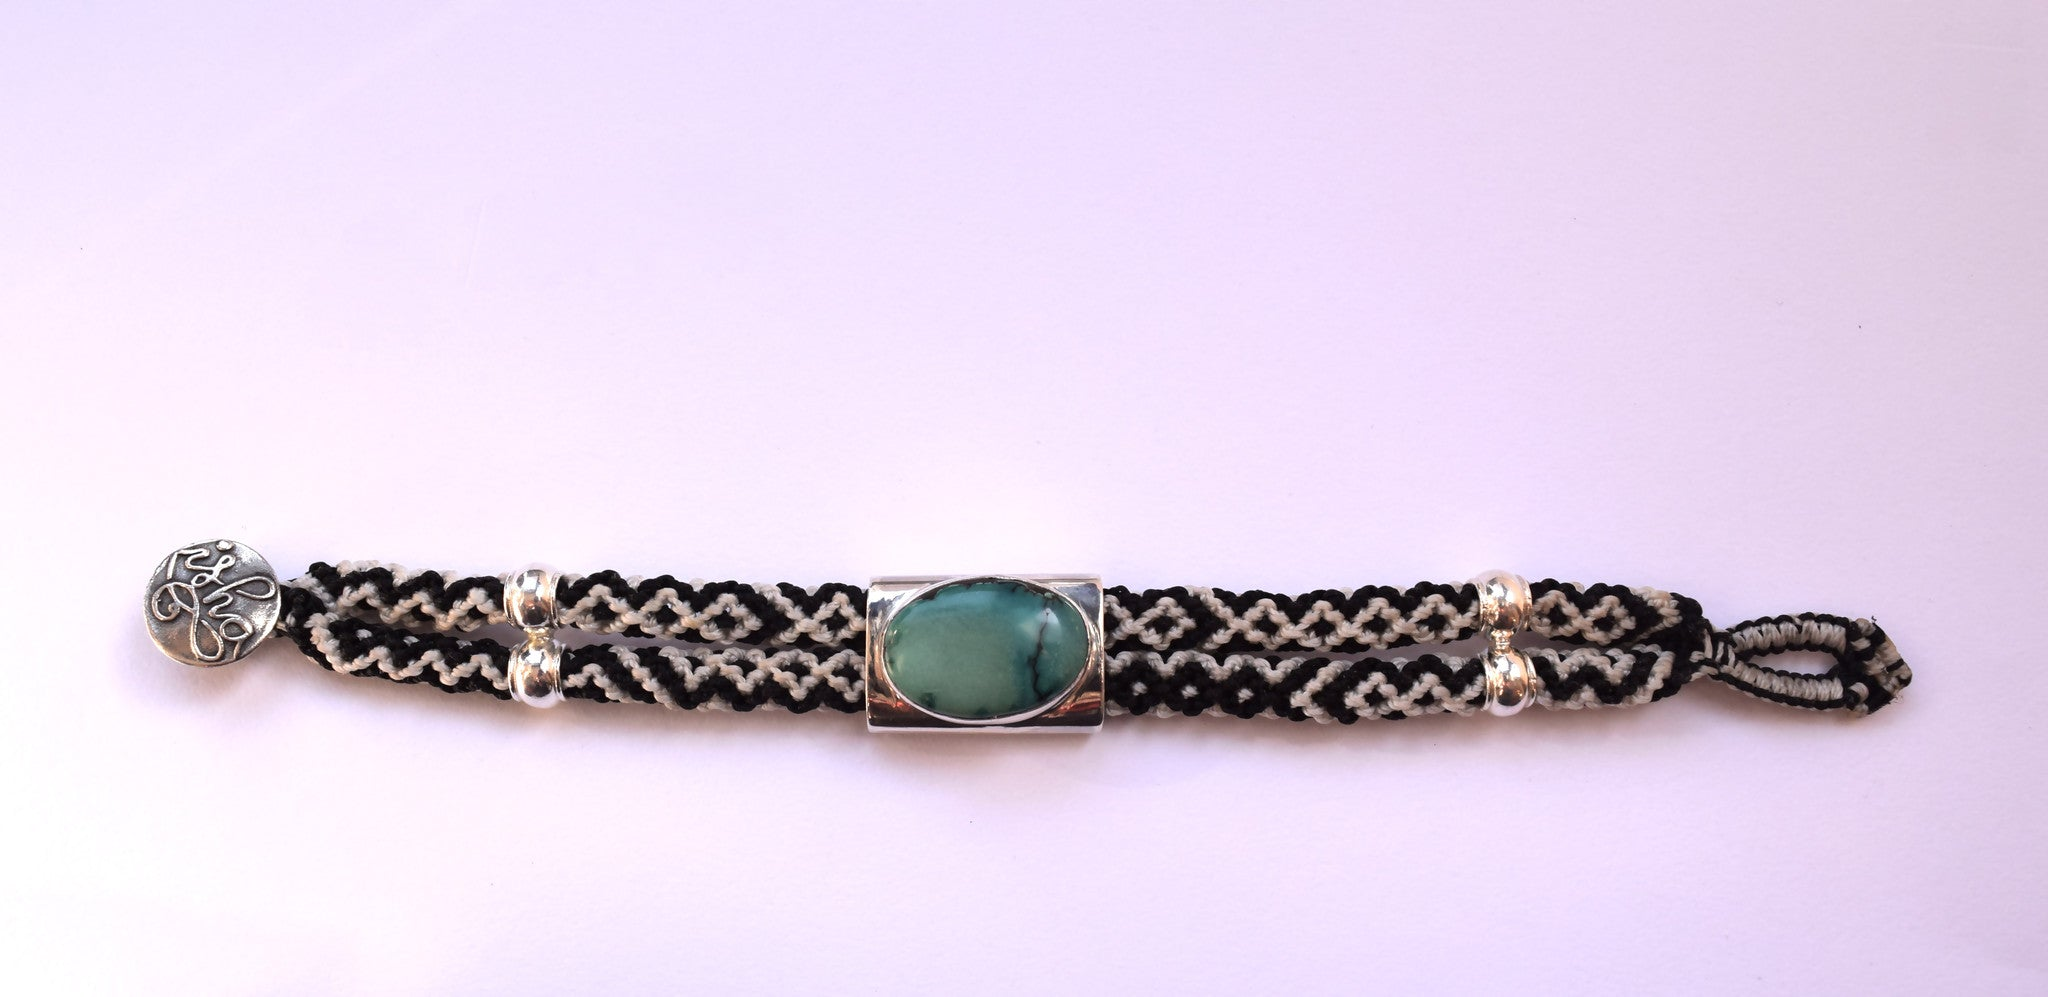 wild bracelet stone sage designs whimsy product dsc and tassle green